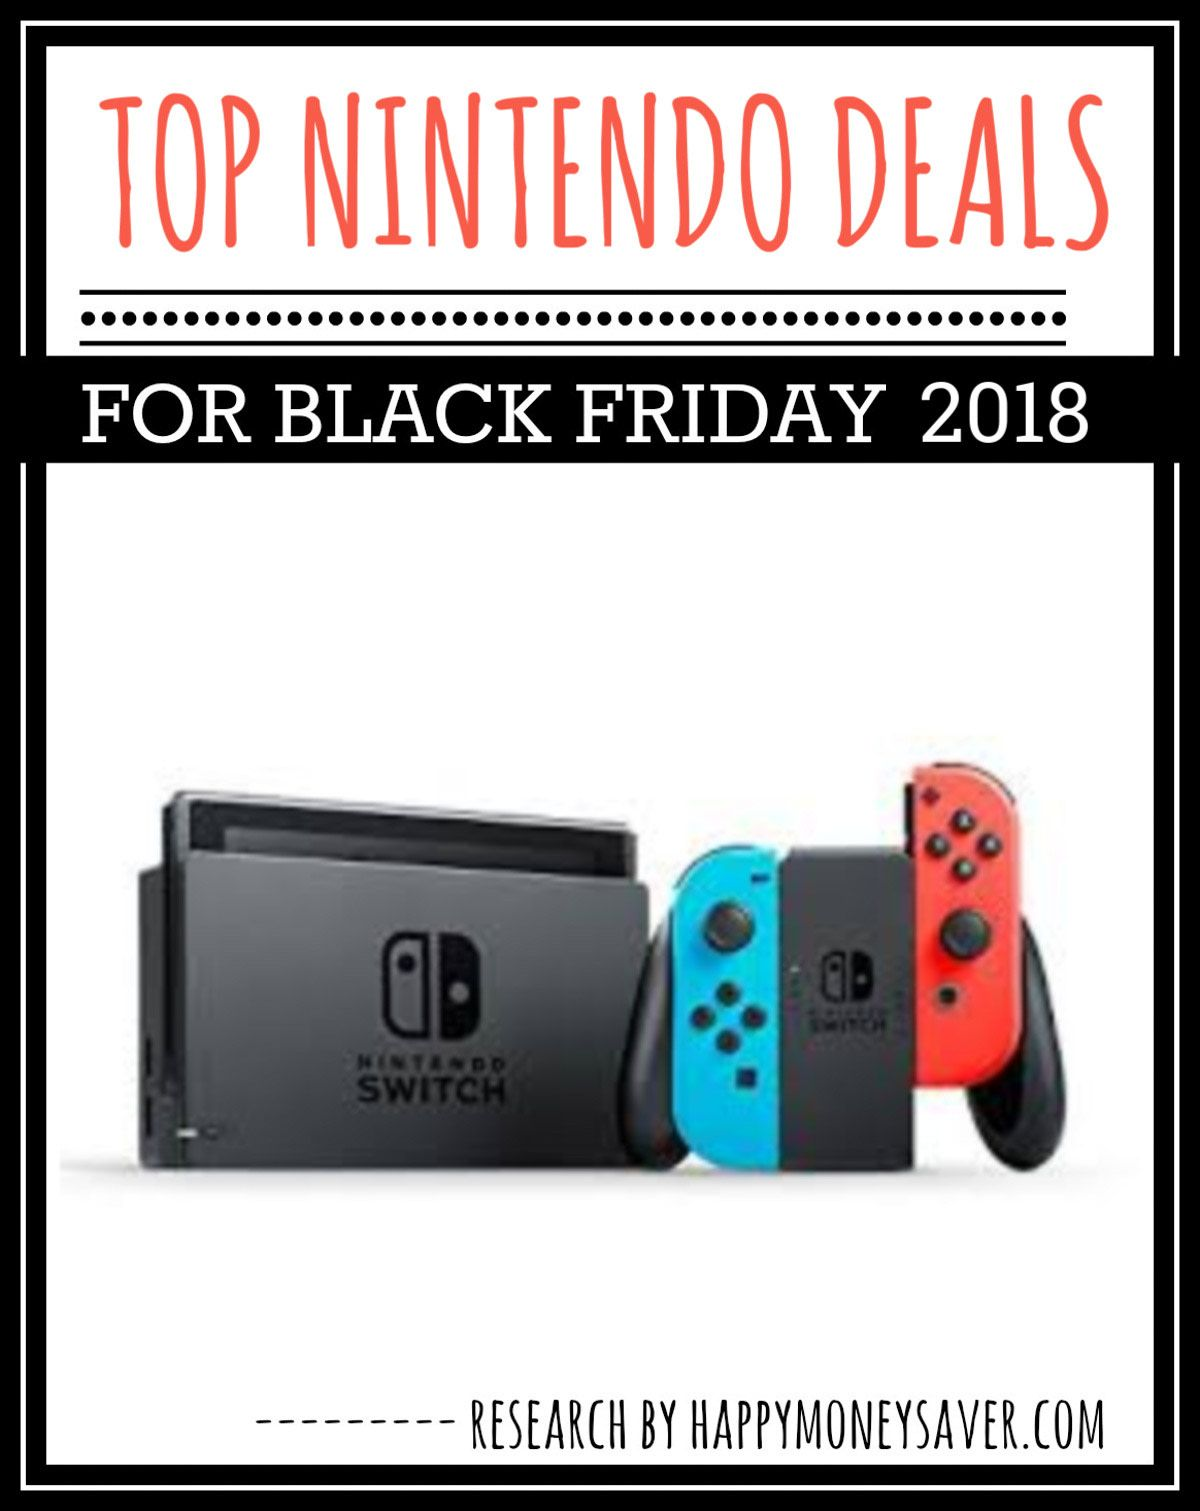 0ccfaf29faa HUGE roundup of all the Nintendo Switch Black Friday deals for 2018! Nintendo  Black Friday